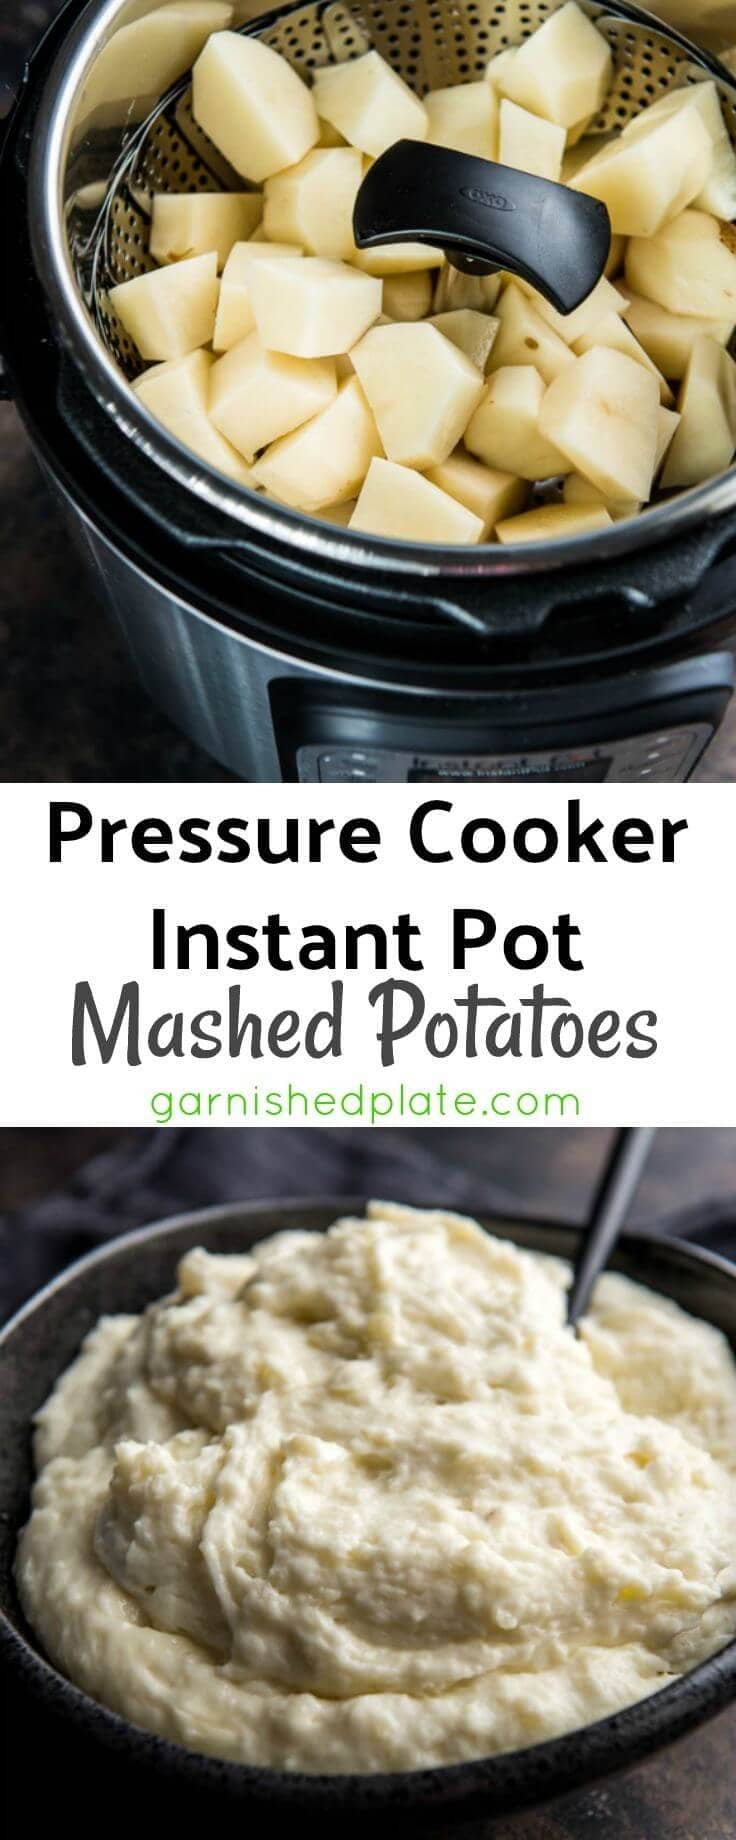 Pressure Cooker Instant Pot Mashed Potatoes are a quick and delicious way to have real homemade mashed potatoes in no time! Perfect for family dinners!